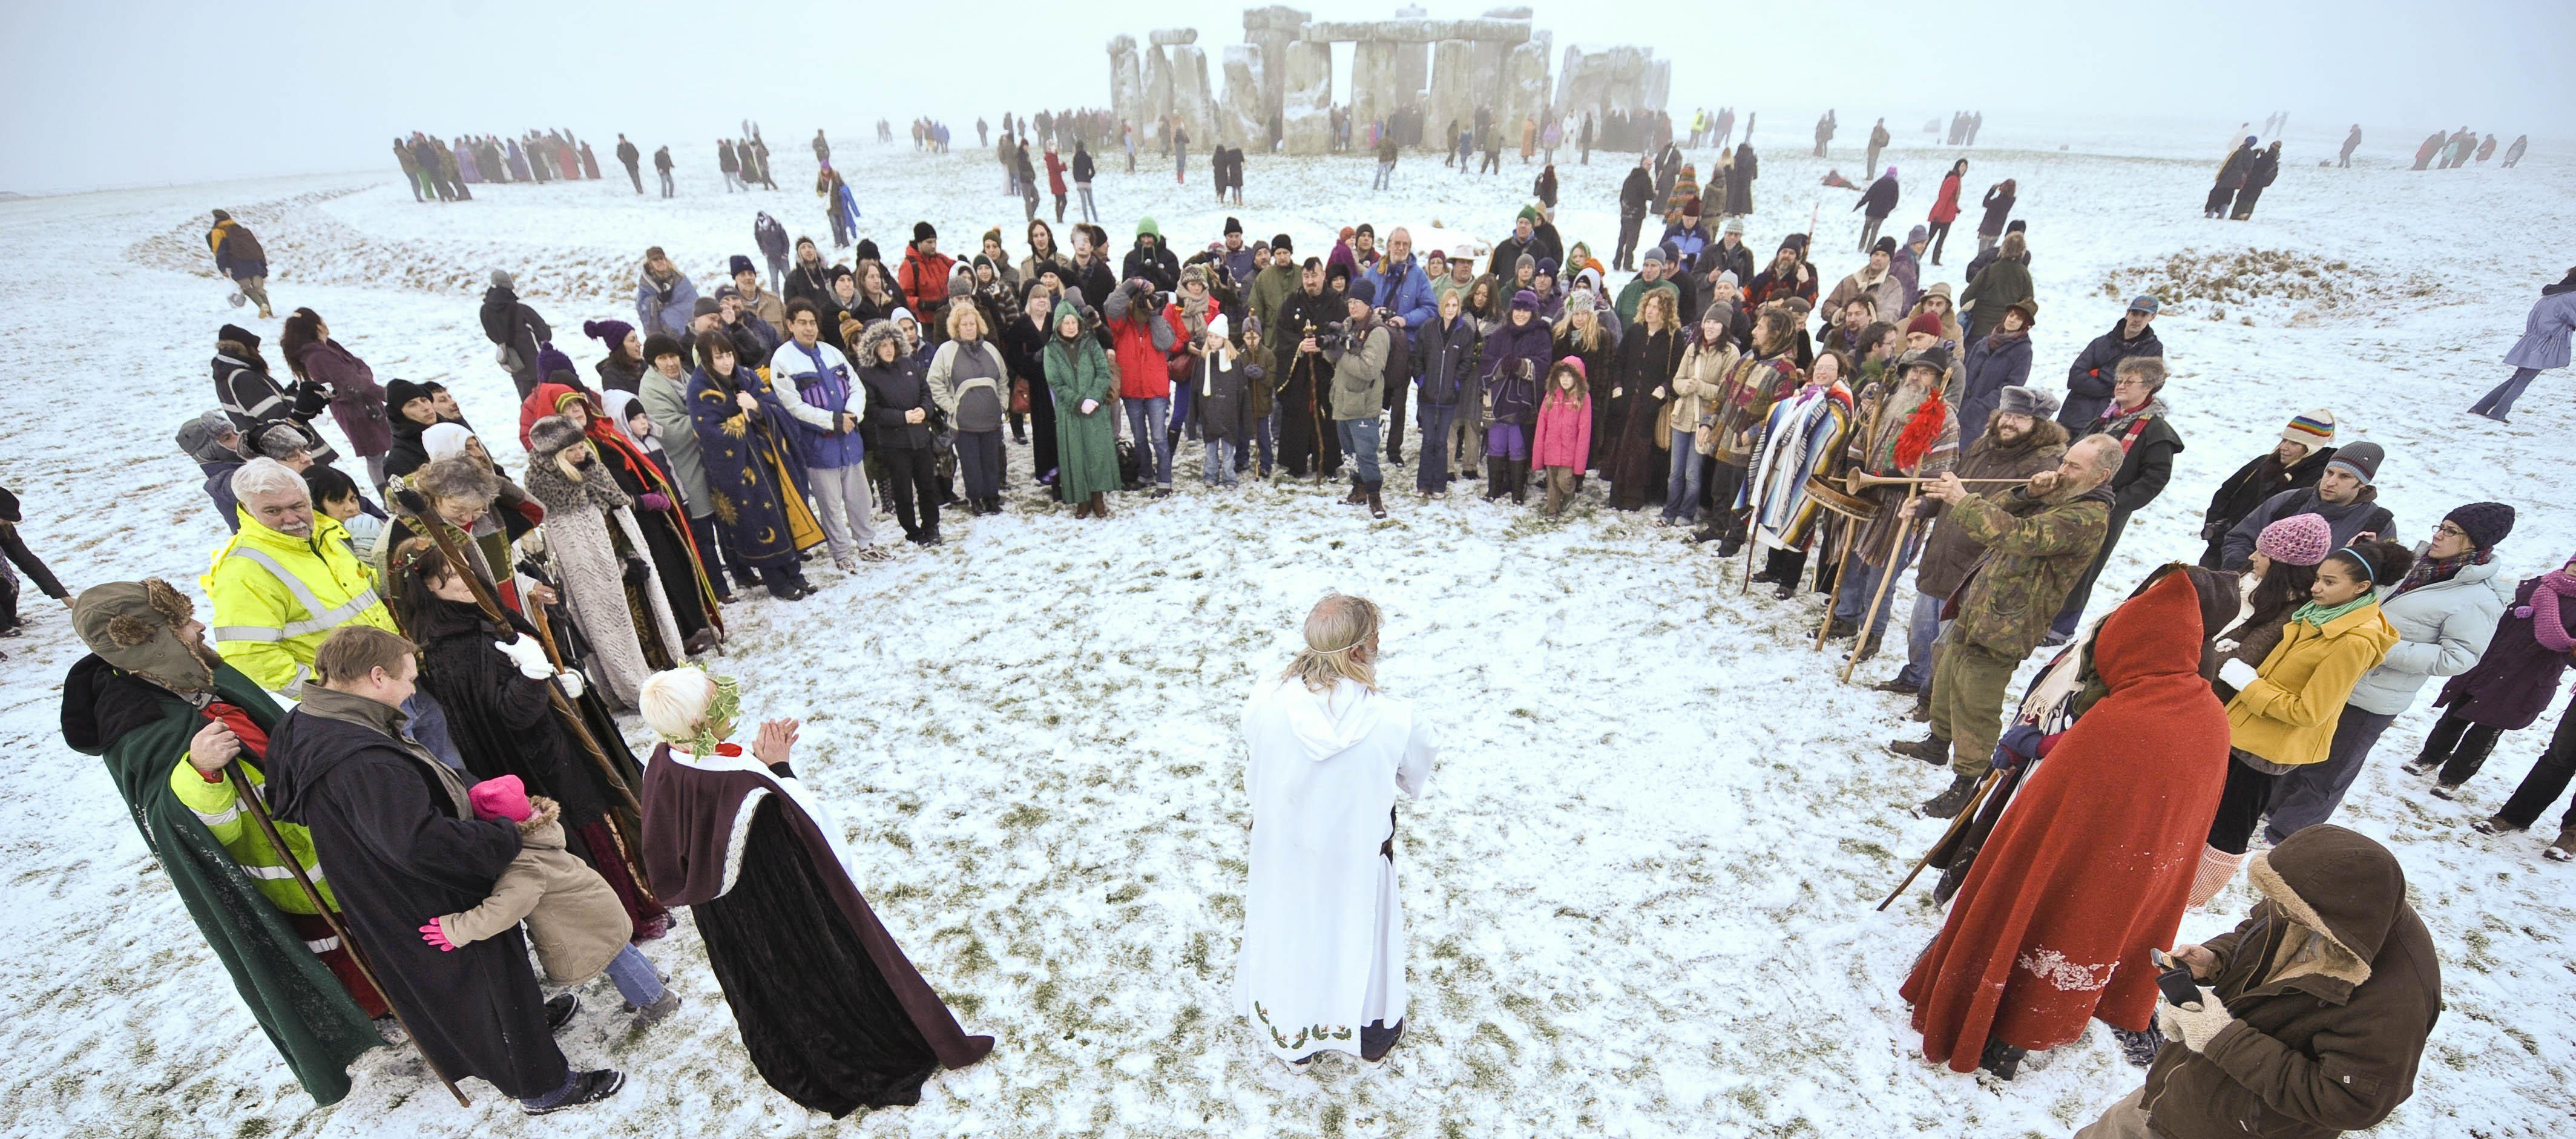 Crowds gather to celebrate the Winter Solstice in 2009